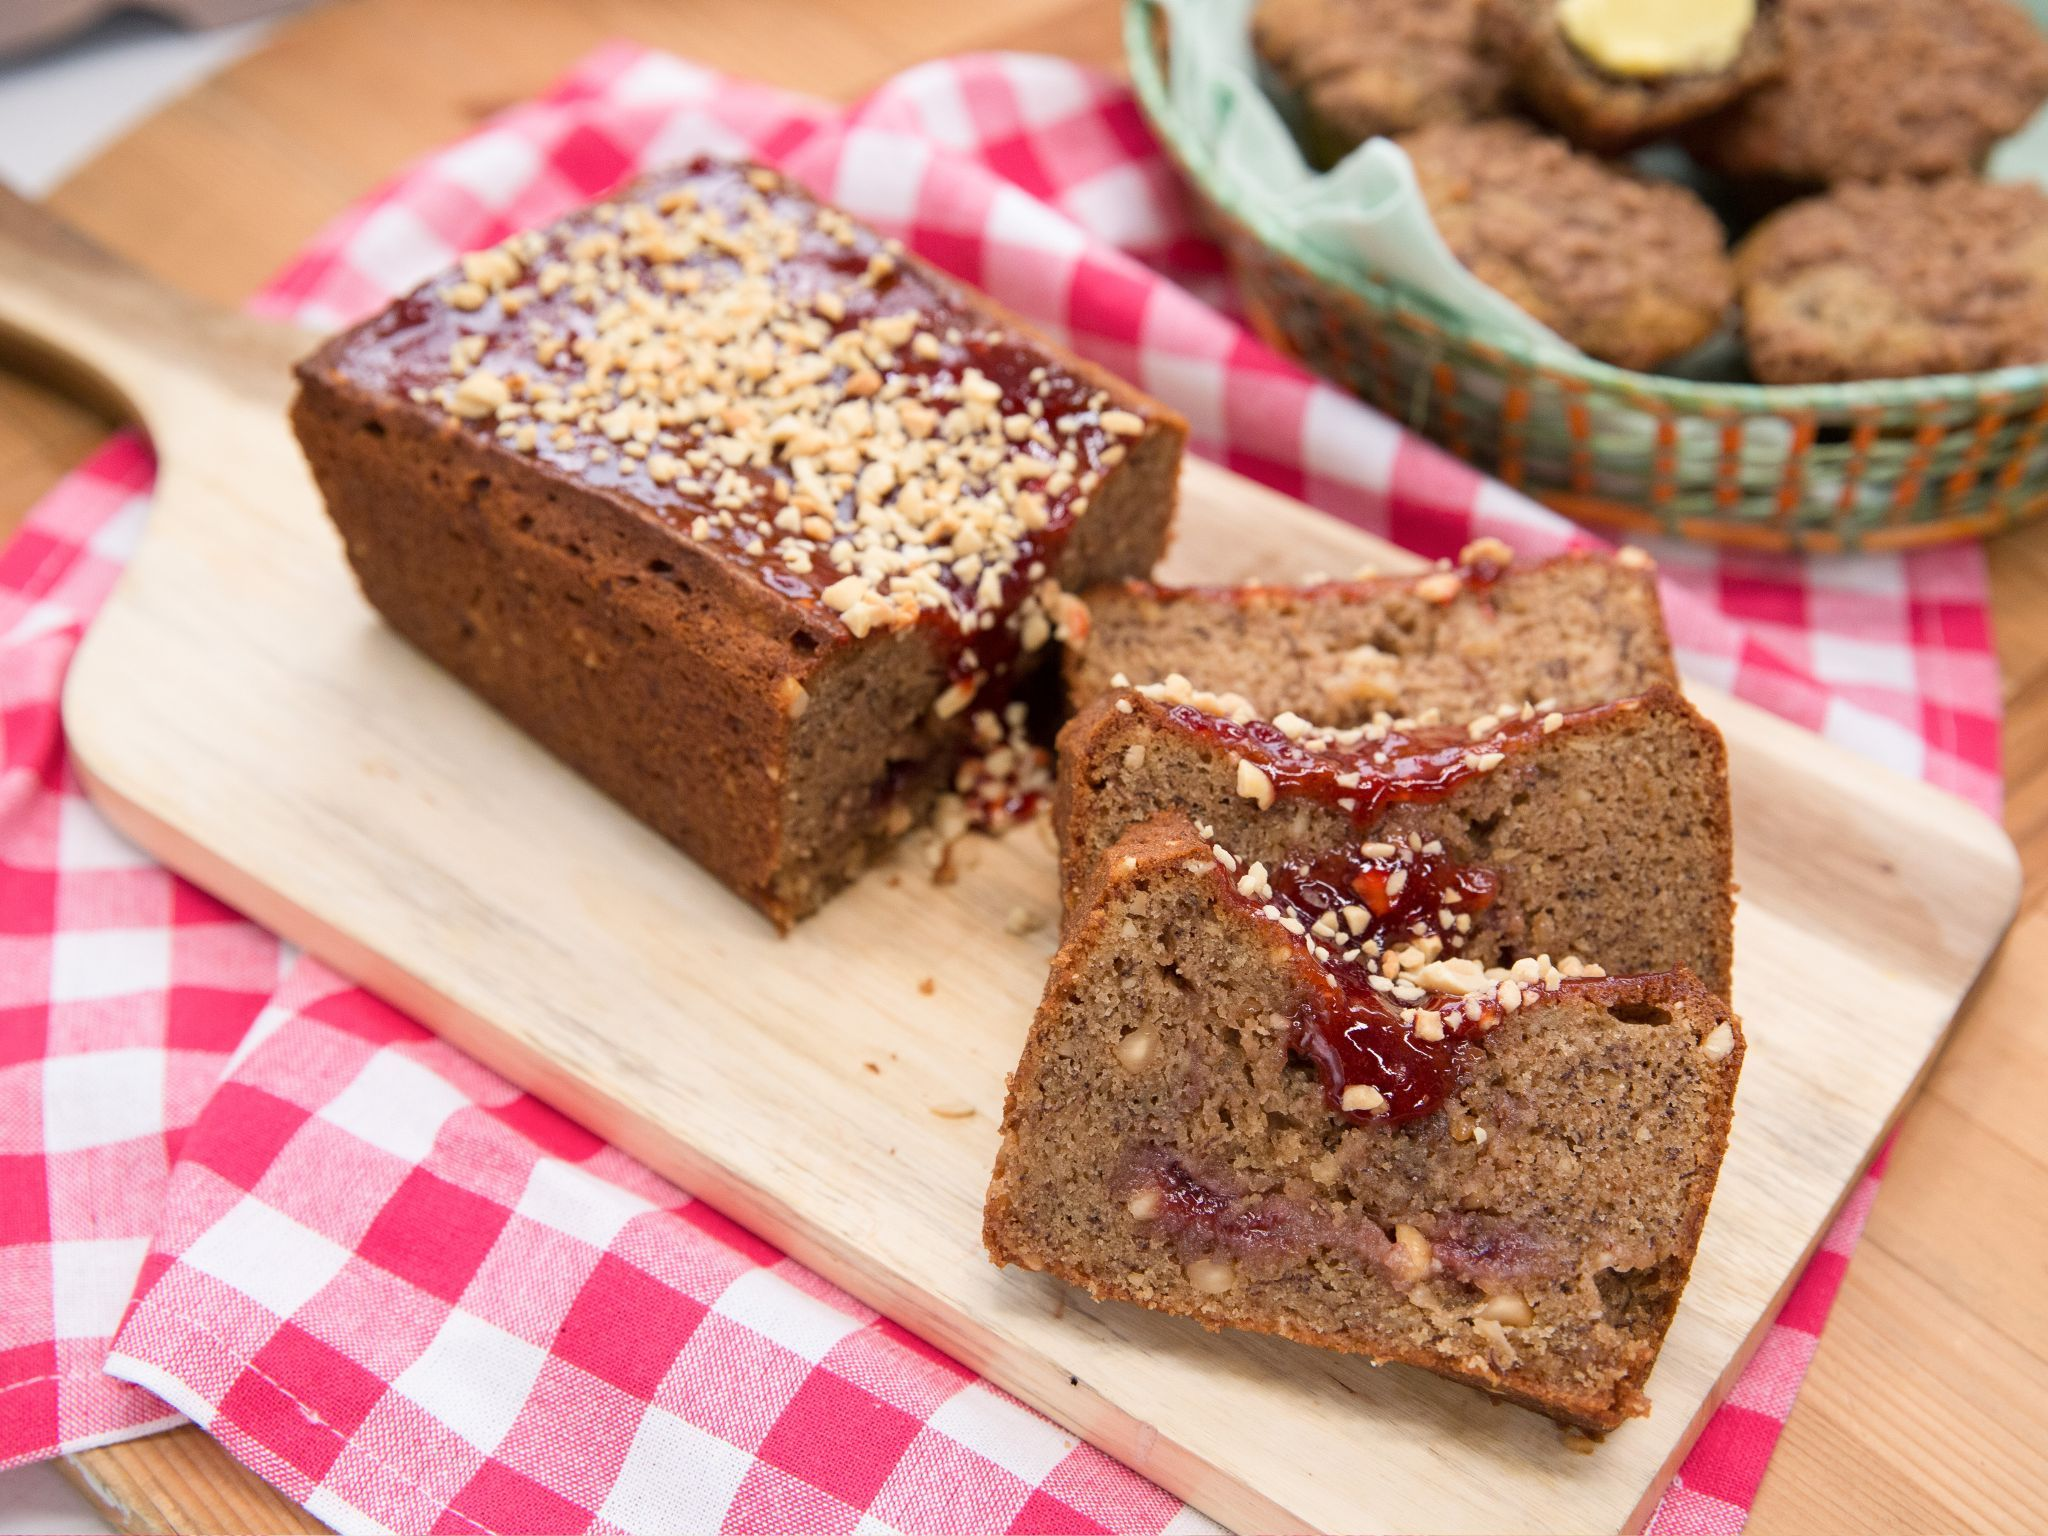 Peanut butter and jelly banana bread recipe banana bread recipes peanut butter and jelly banana bread recipe banana bread recipes bread recipes and banana bread forumfinder Image collections